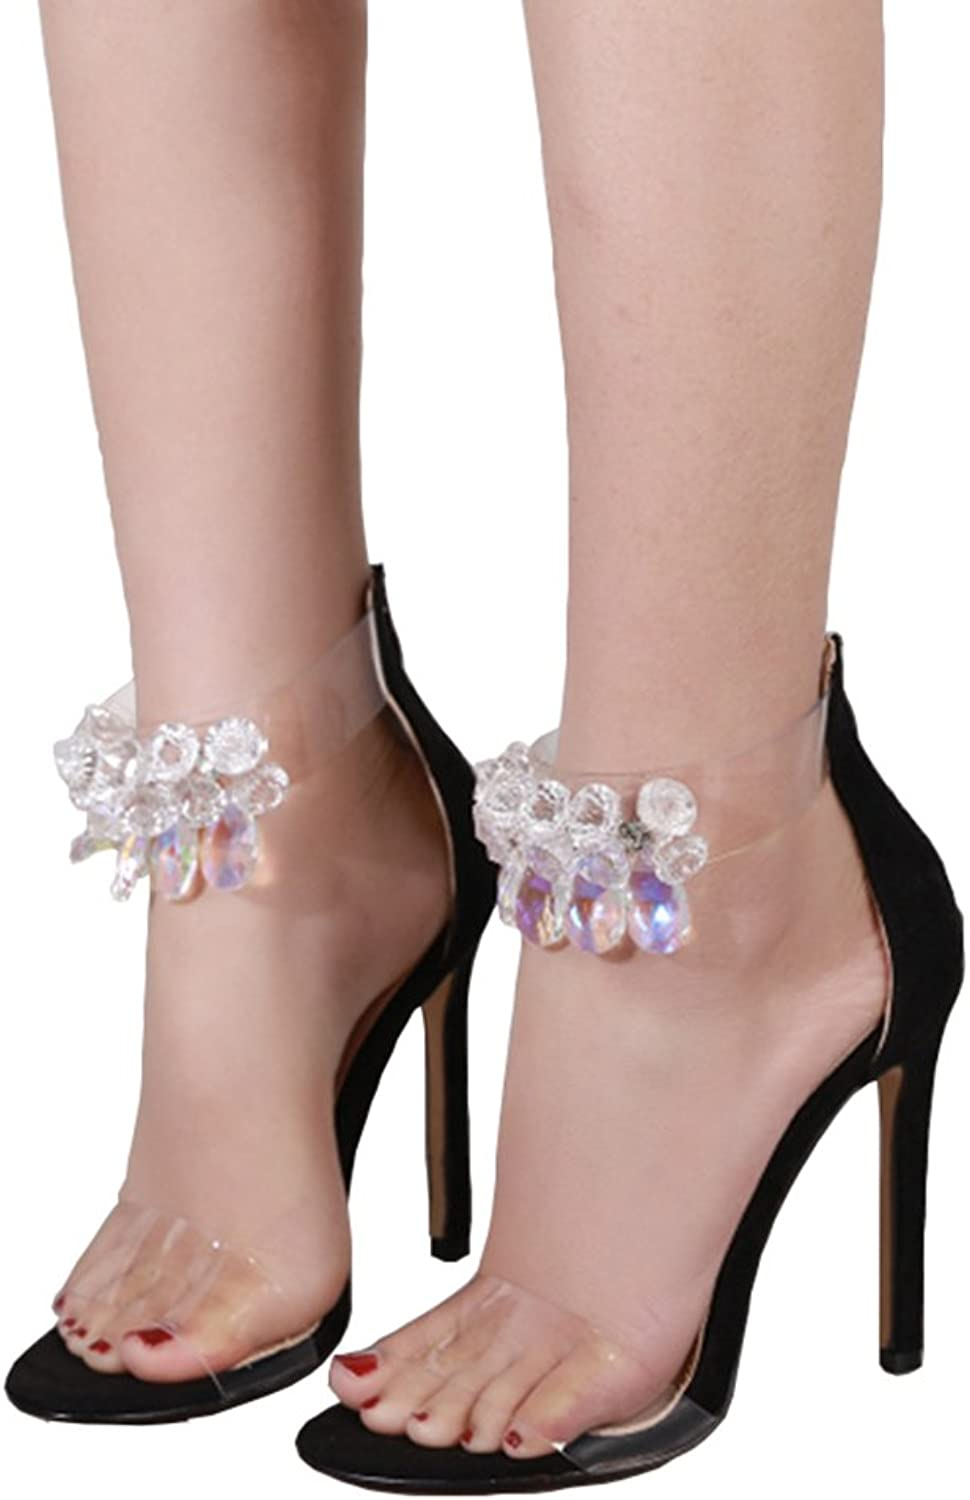 AZMODO Woman's Rhinestone Crystal Ankle Strap Stiletto Heeled Sandal Open Toe Bridal Party shoes